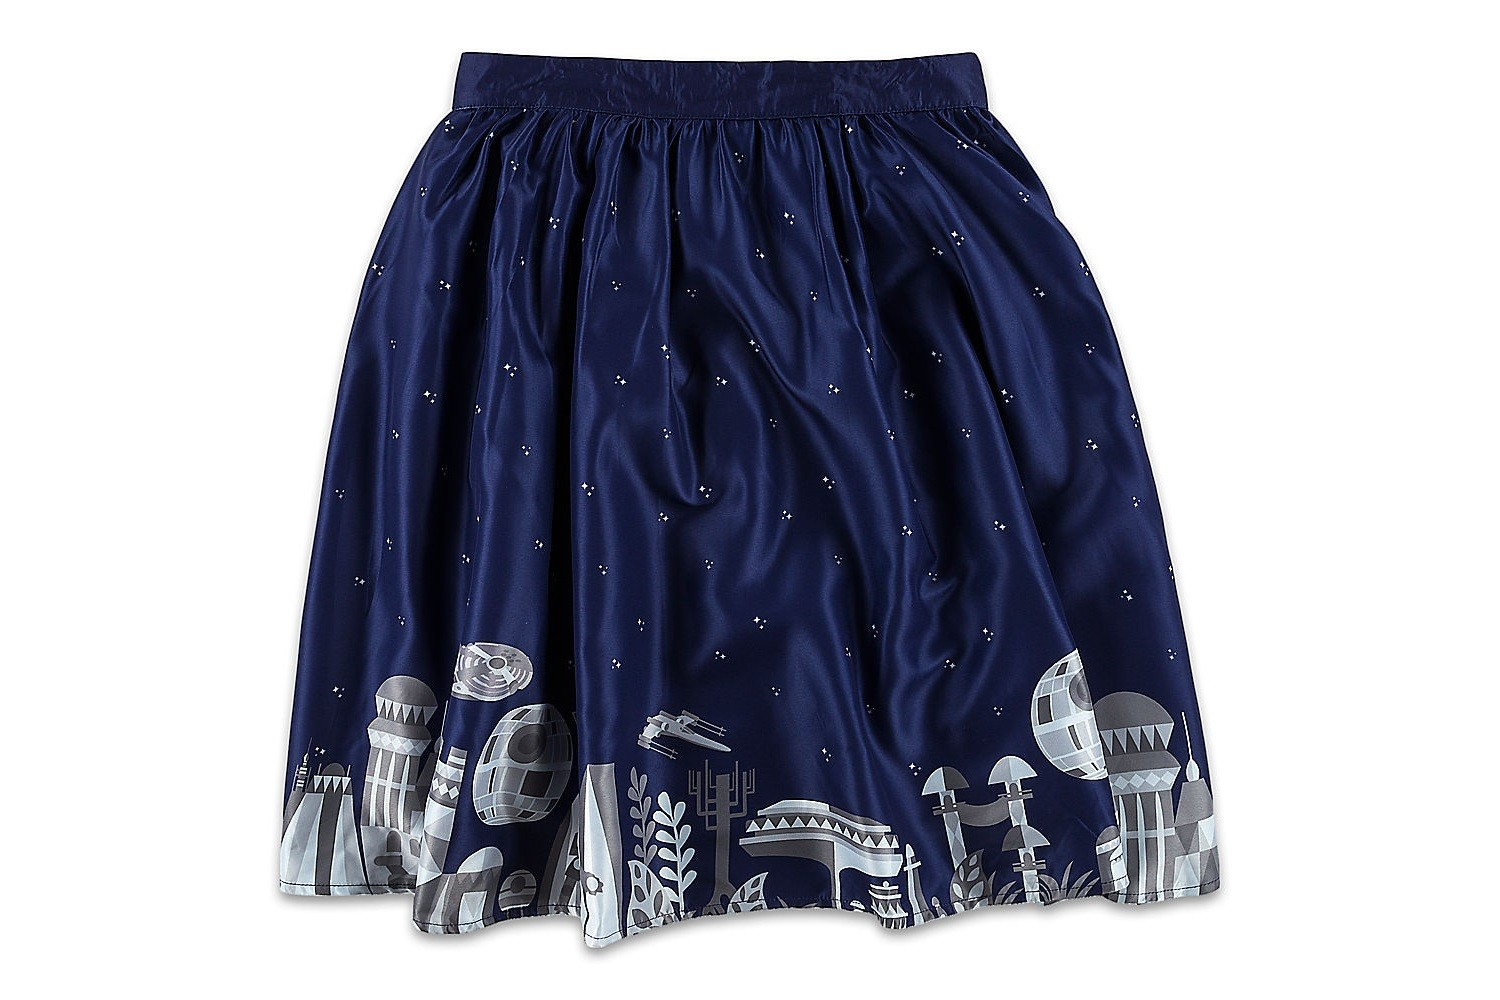 Her Universe Galaxy Skirt at Disney Store